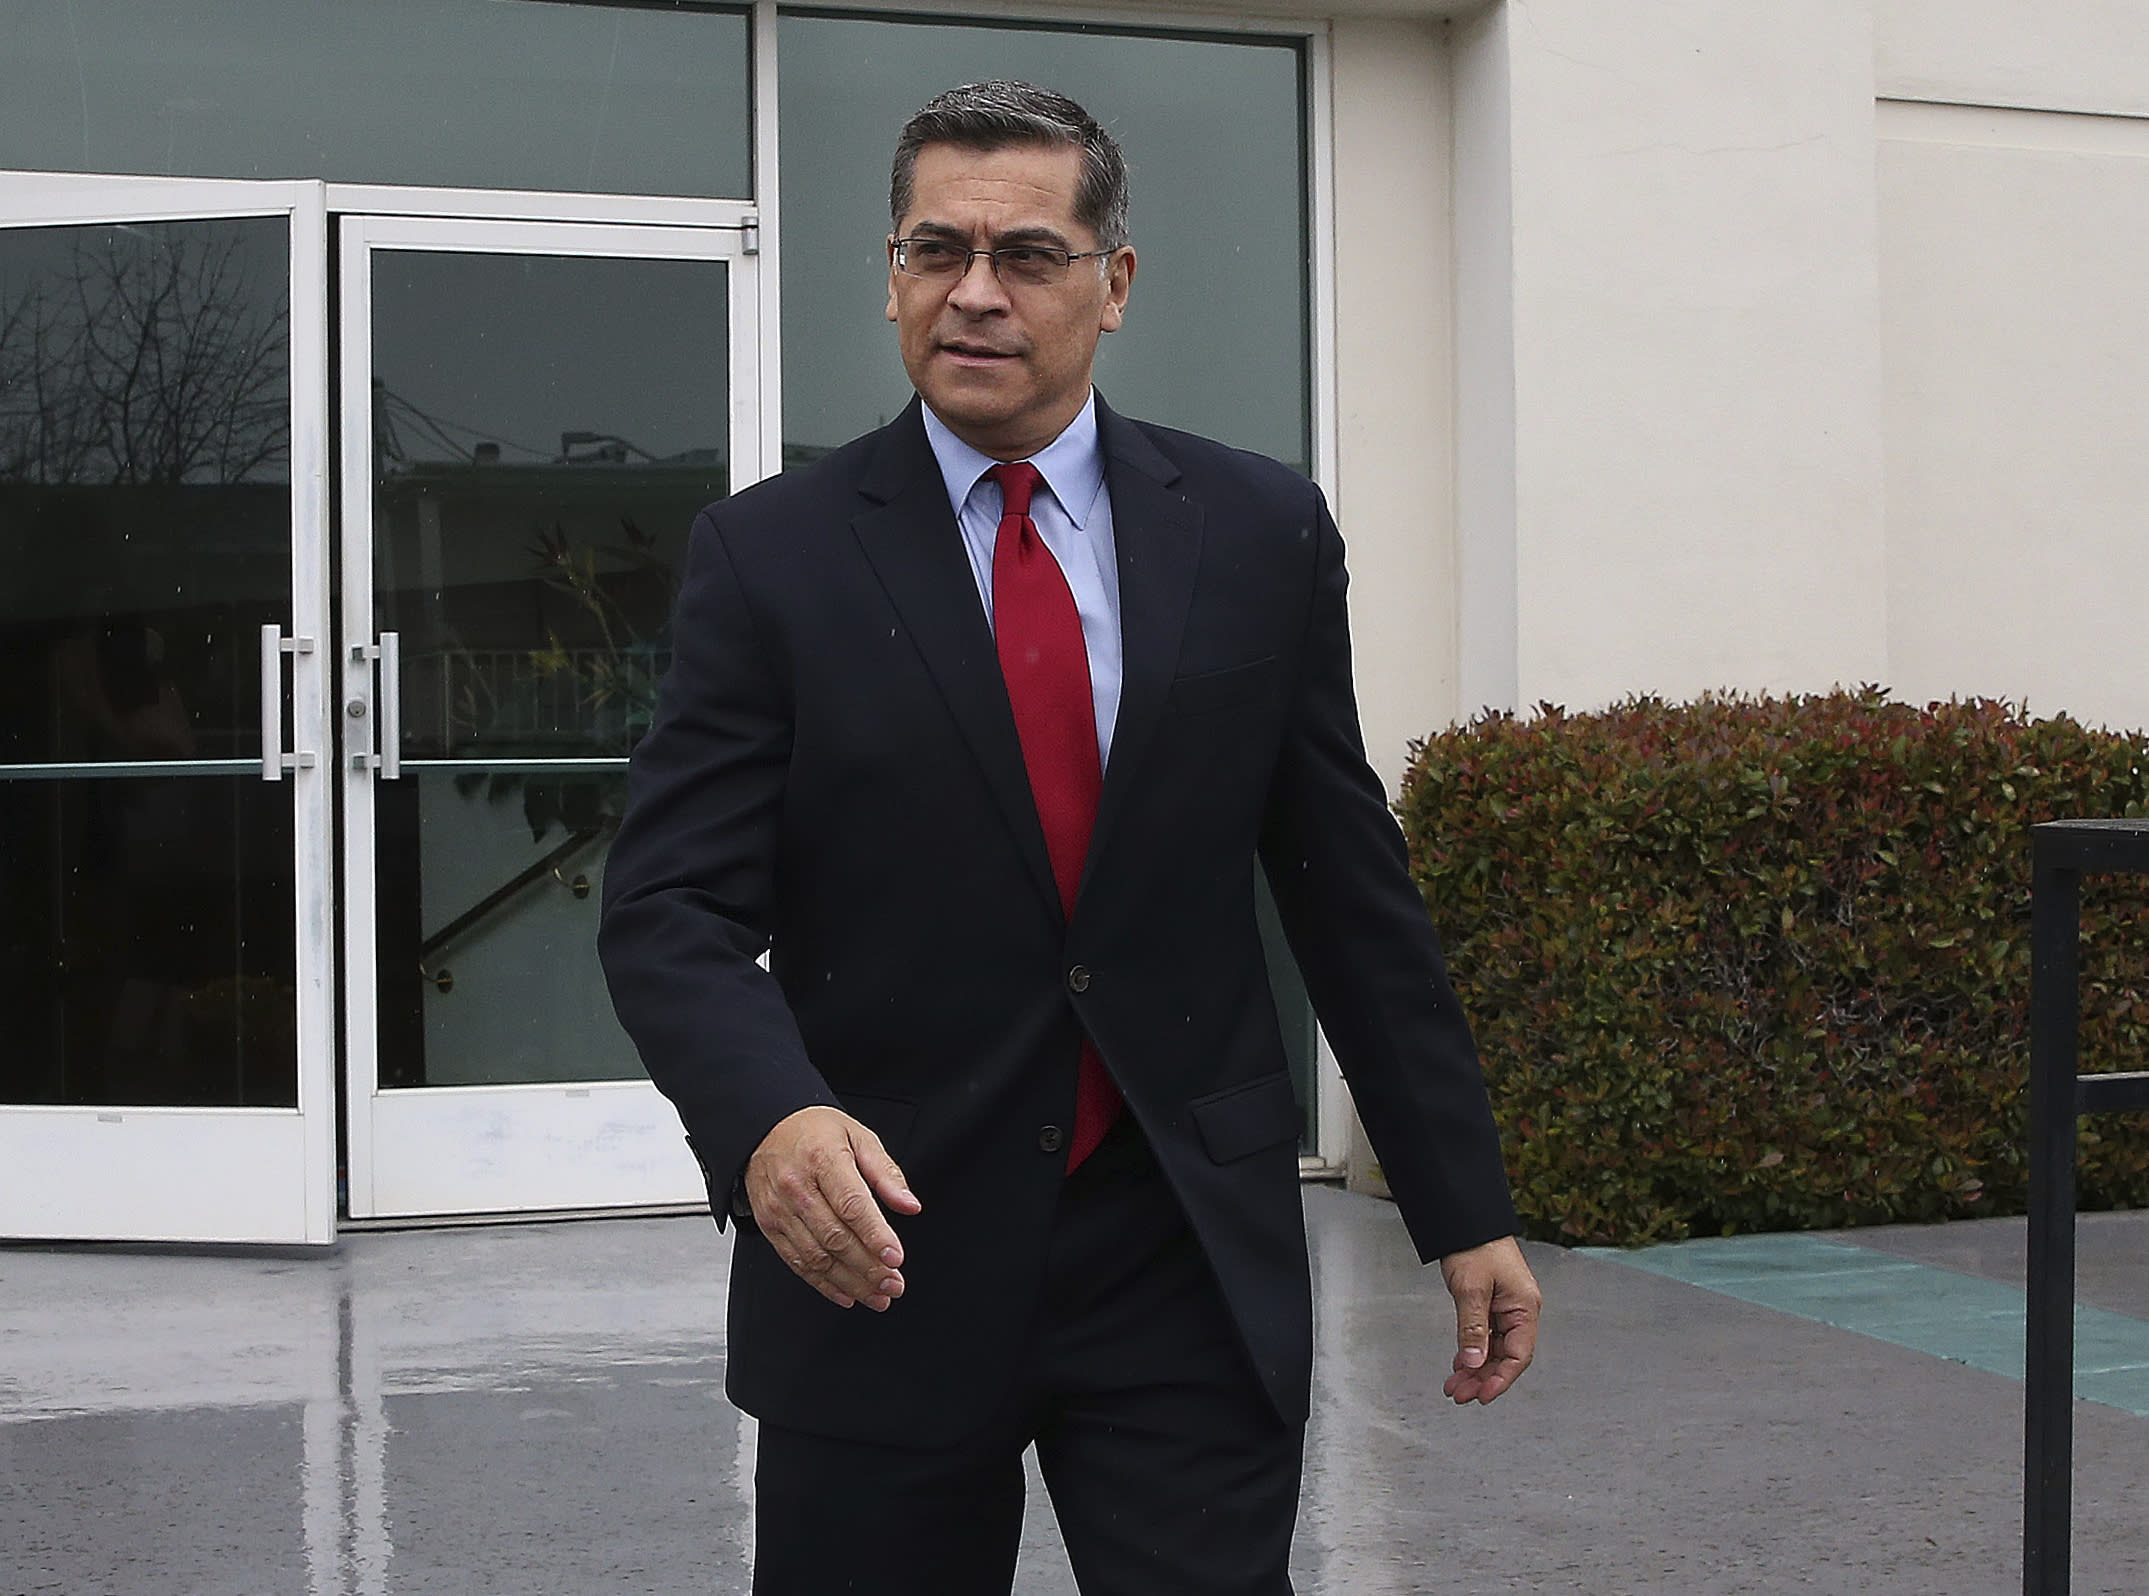 California Attorney General Xavier Becerra leaves leaves the Calvary Christian Center after meeting with SeQuette Clark, Tuesday, March 5, 2019, in Sacramento, Calif. Becerra is expected later today to announce the results of his criminal investigation into the shooting death of Clark's son, Stephon Clark, by Sacramento police officers last year. (AP Photo/Rich Pedroncelli)